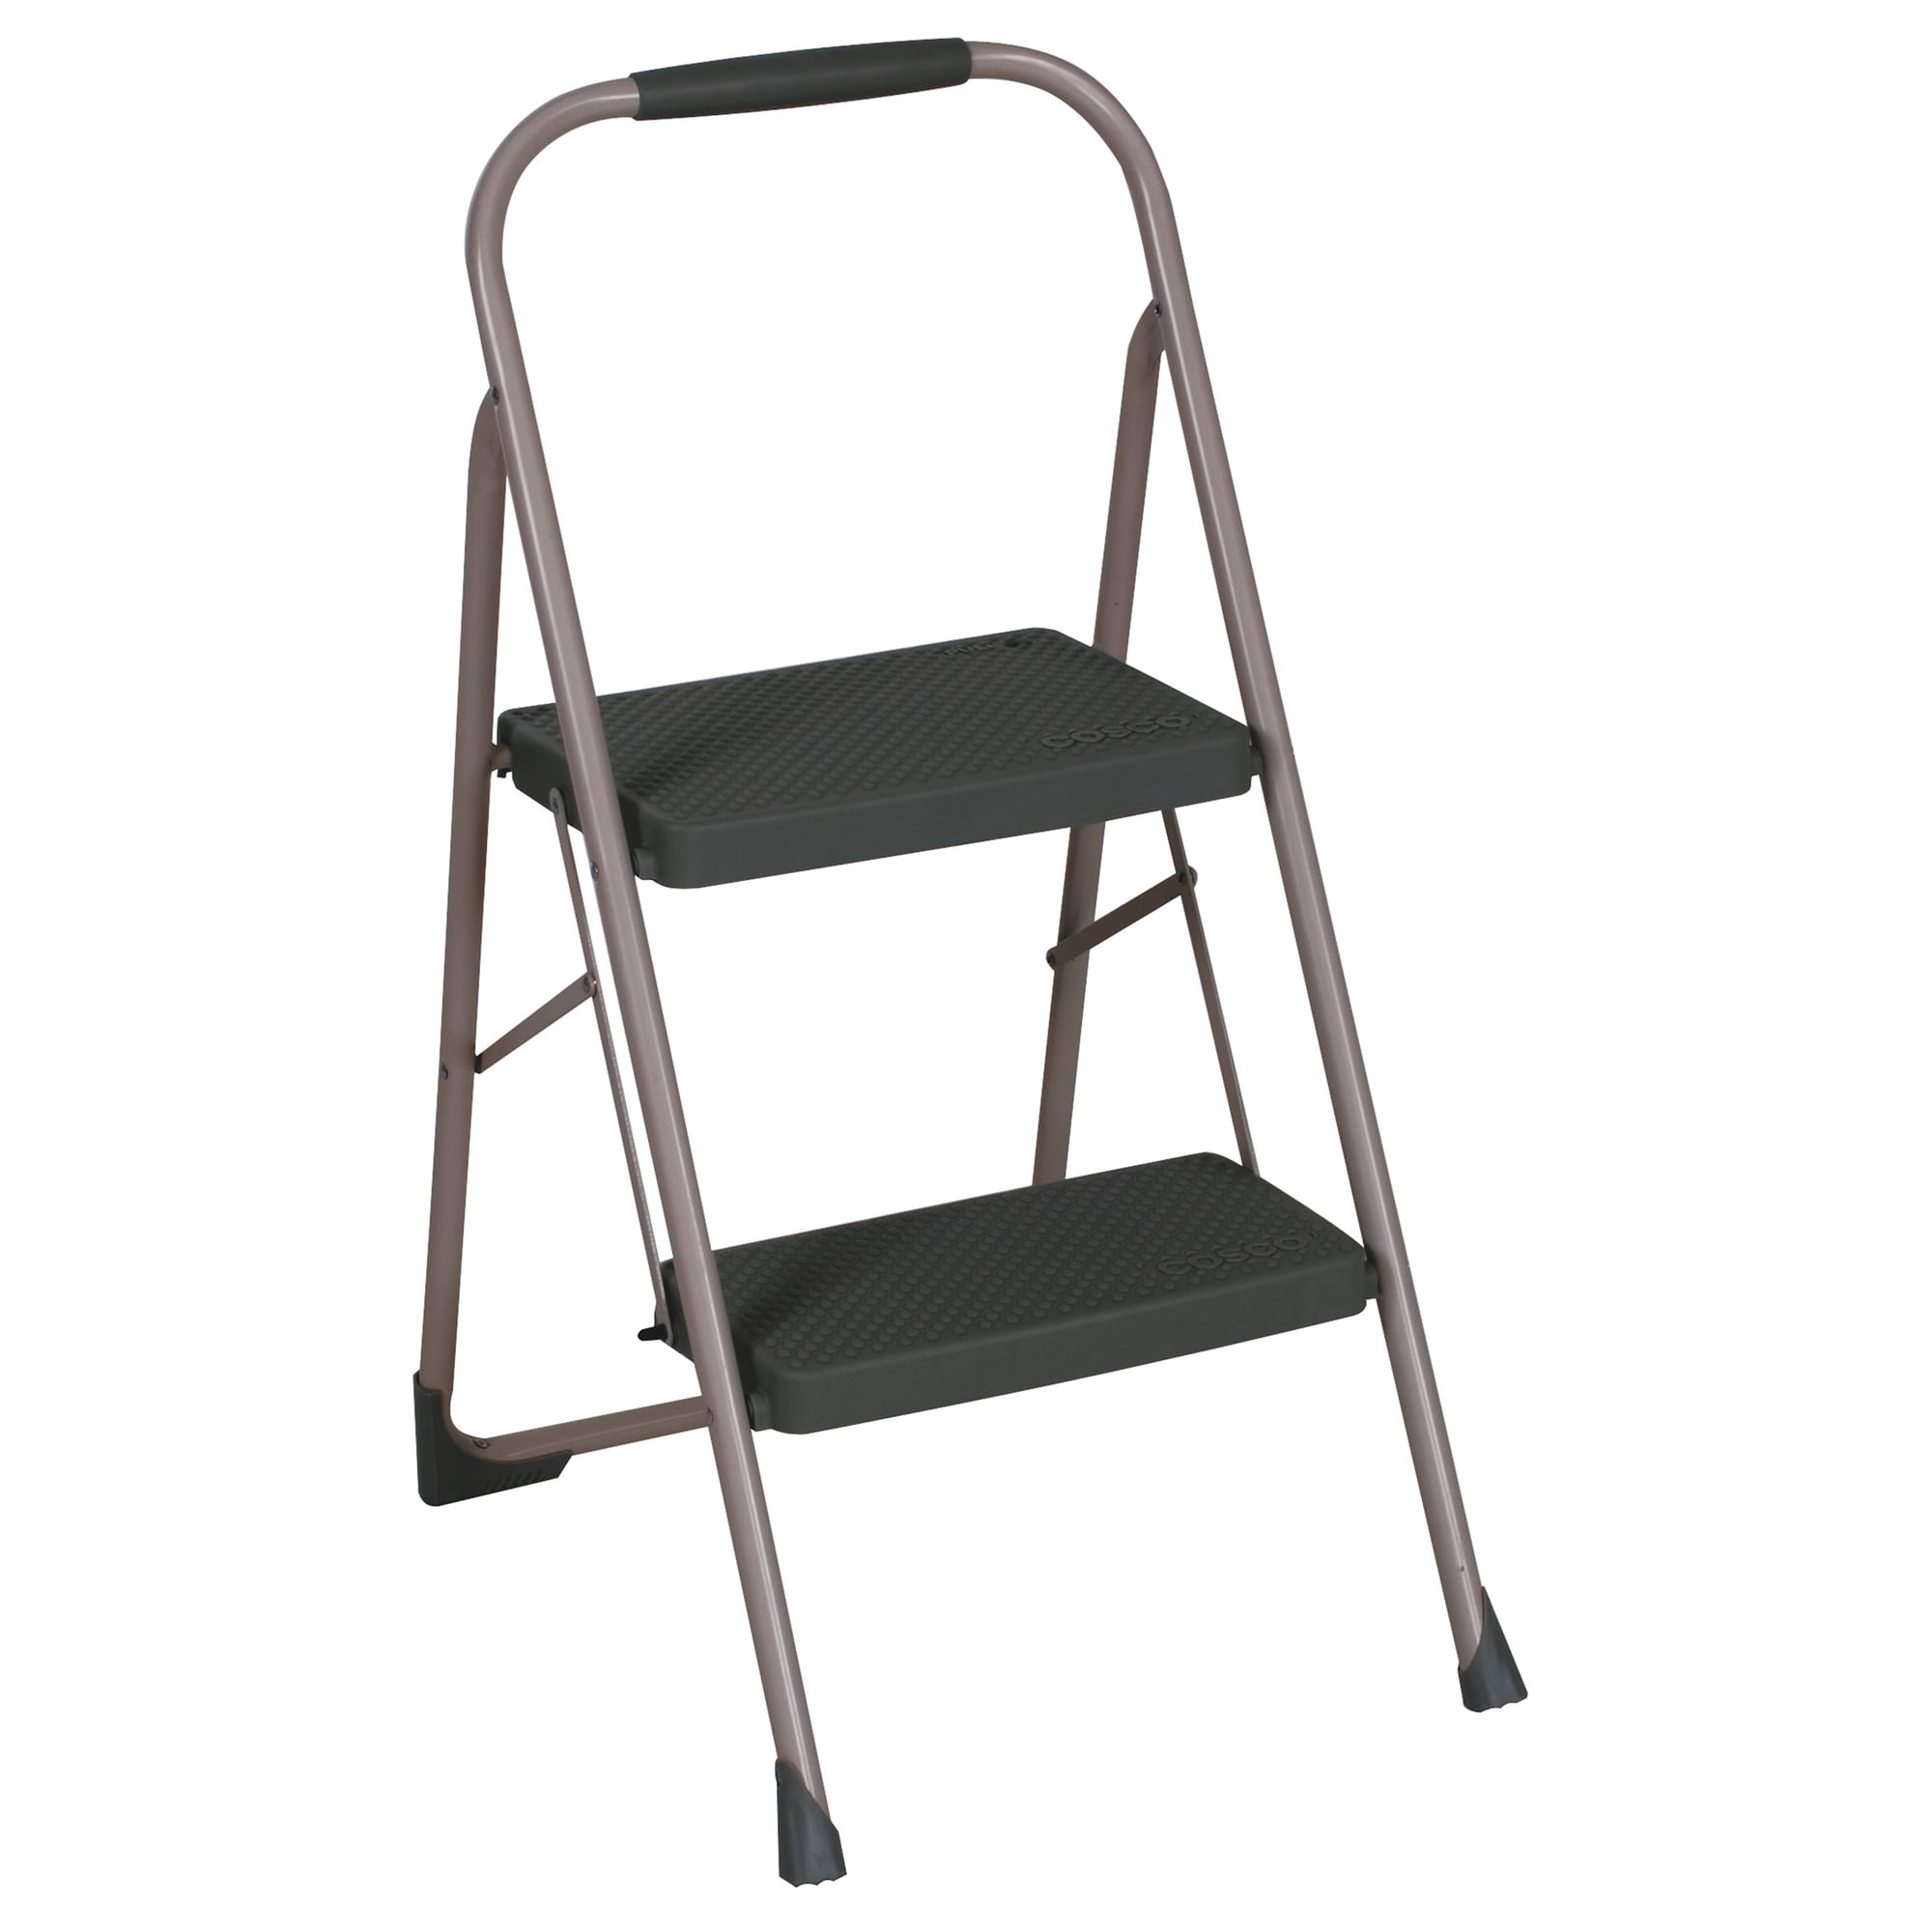 Metal Step Stool Cosco Two Step Big Step Folding Steel Step Stool